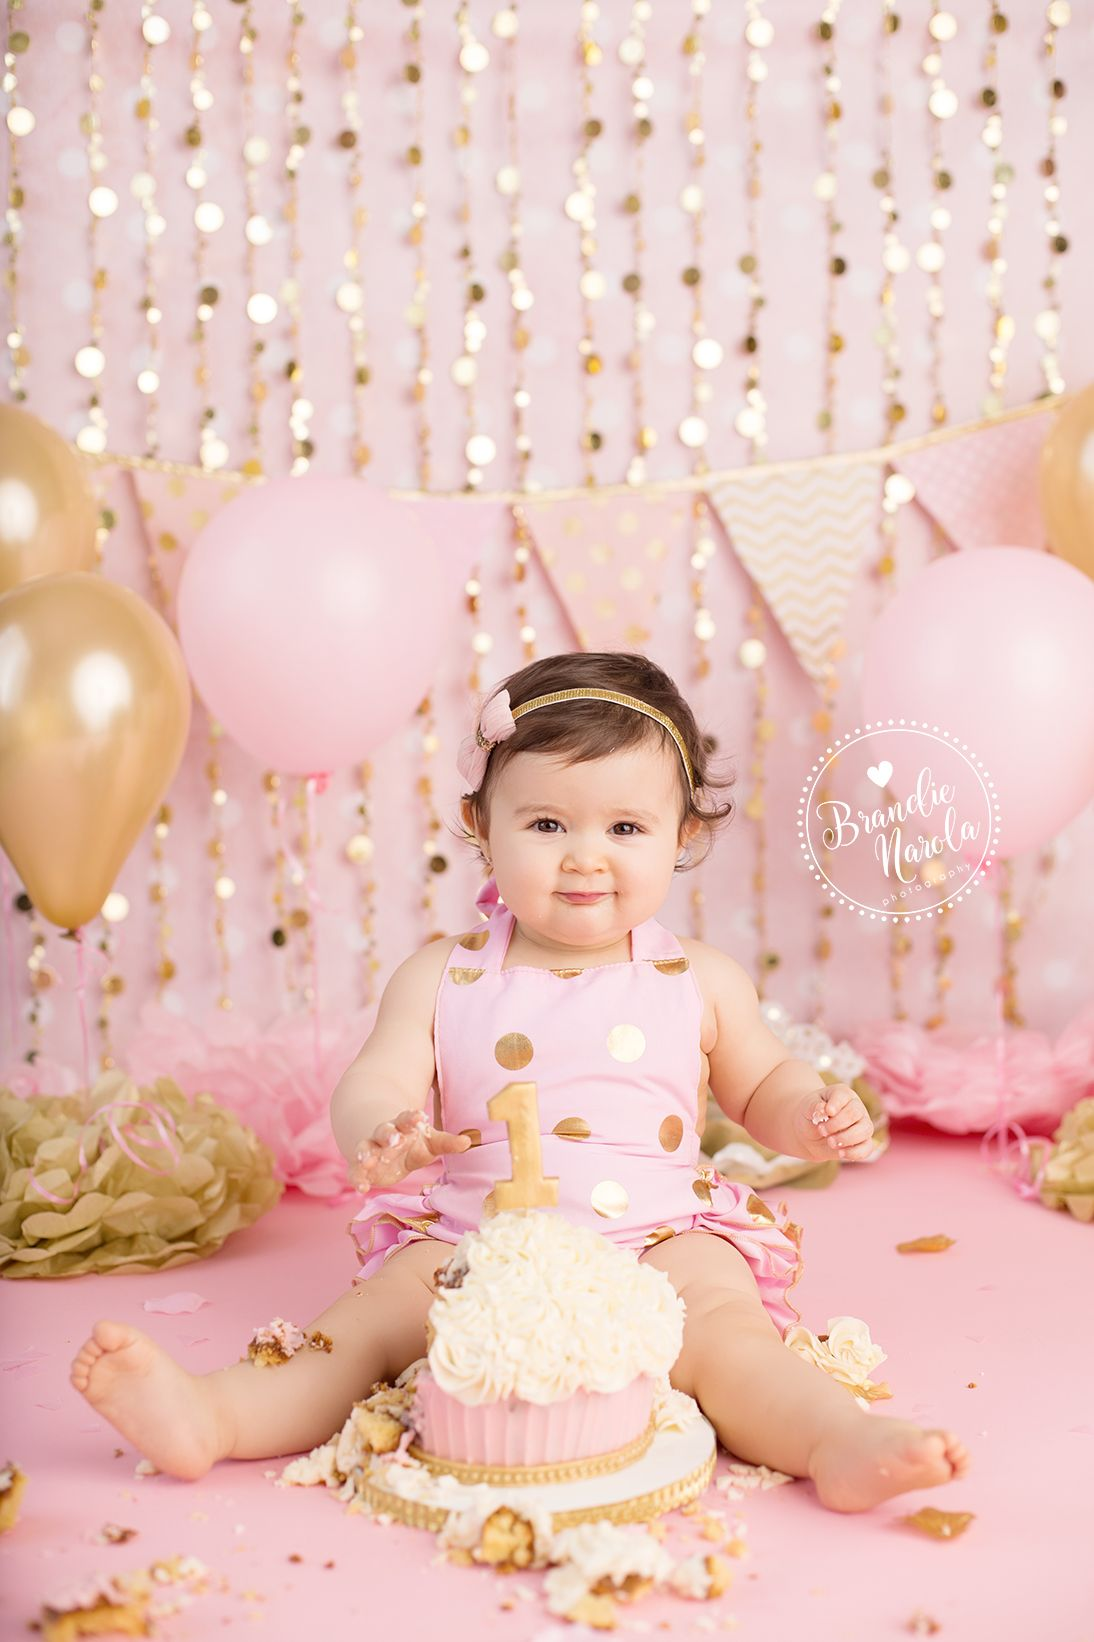 Themed Baby Cake Smash Photos By Brandie Narola Photography